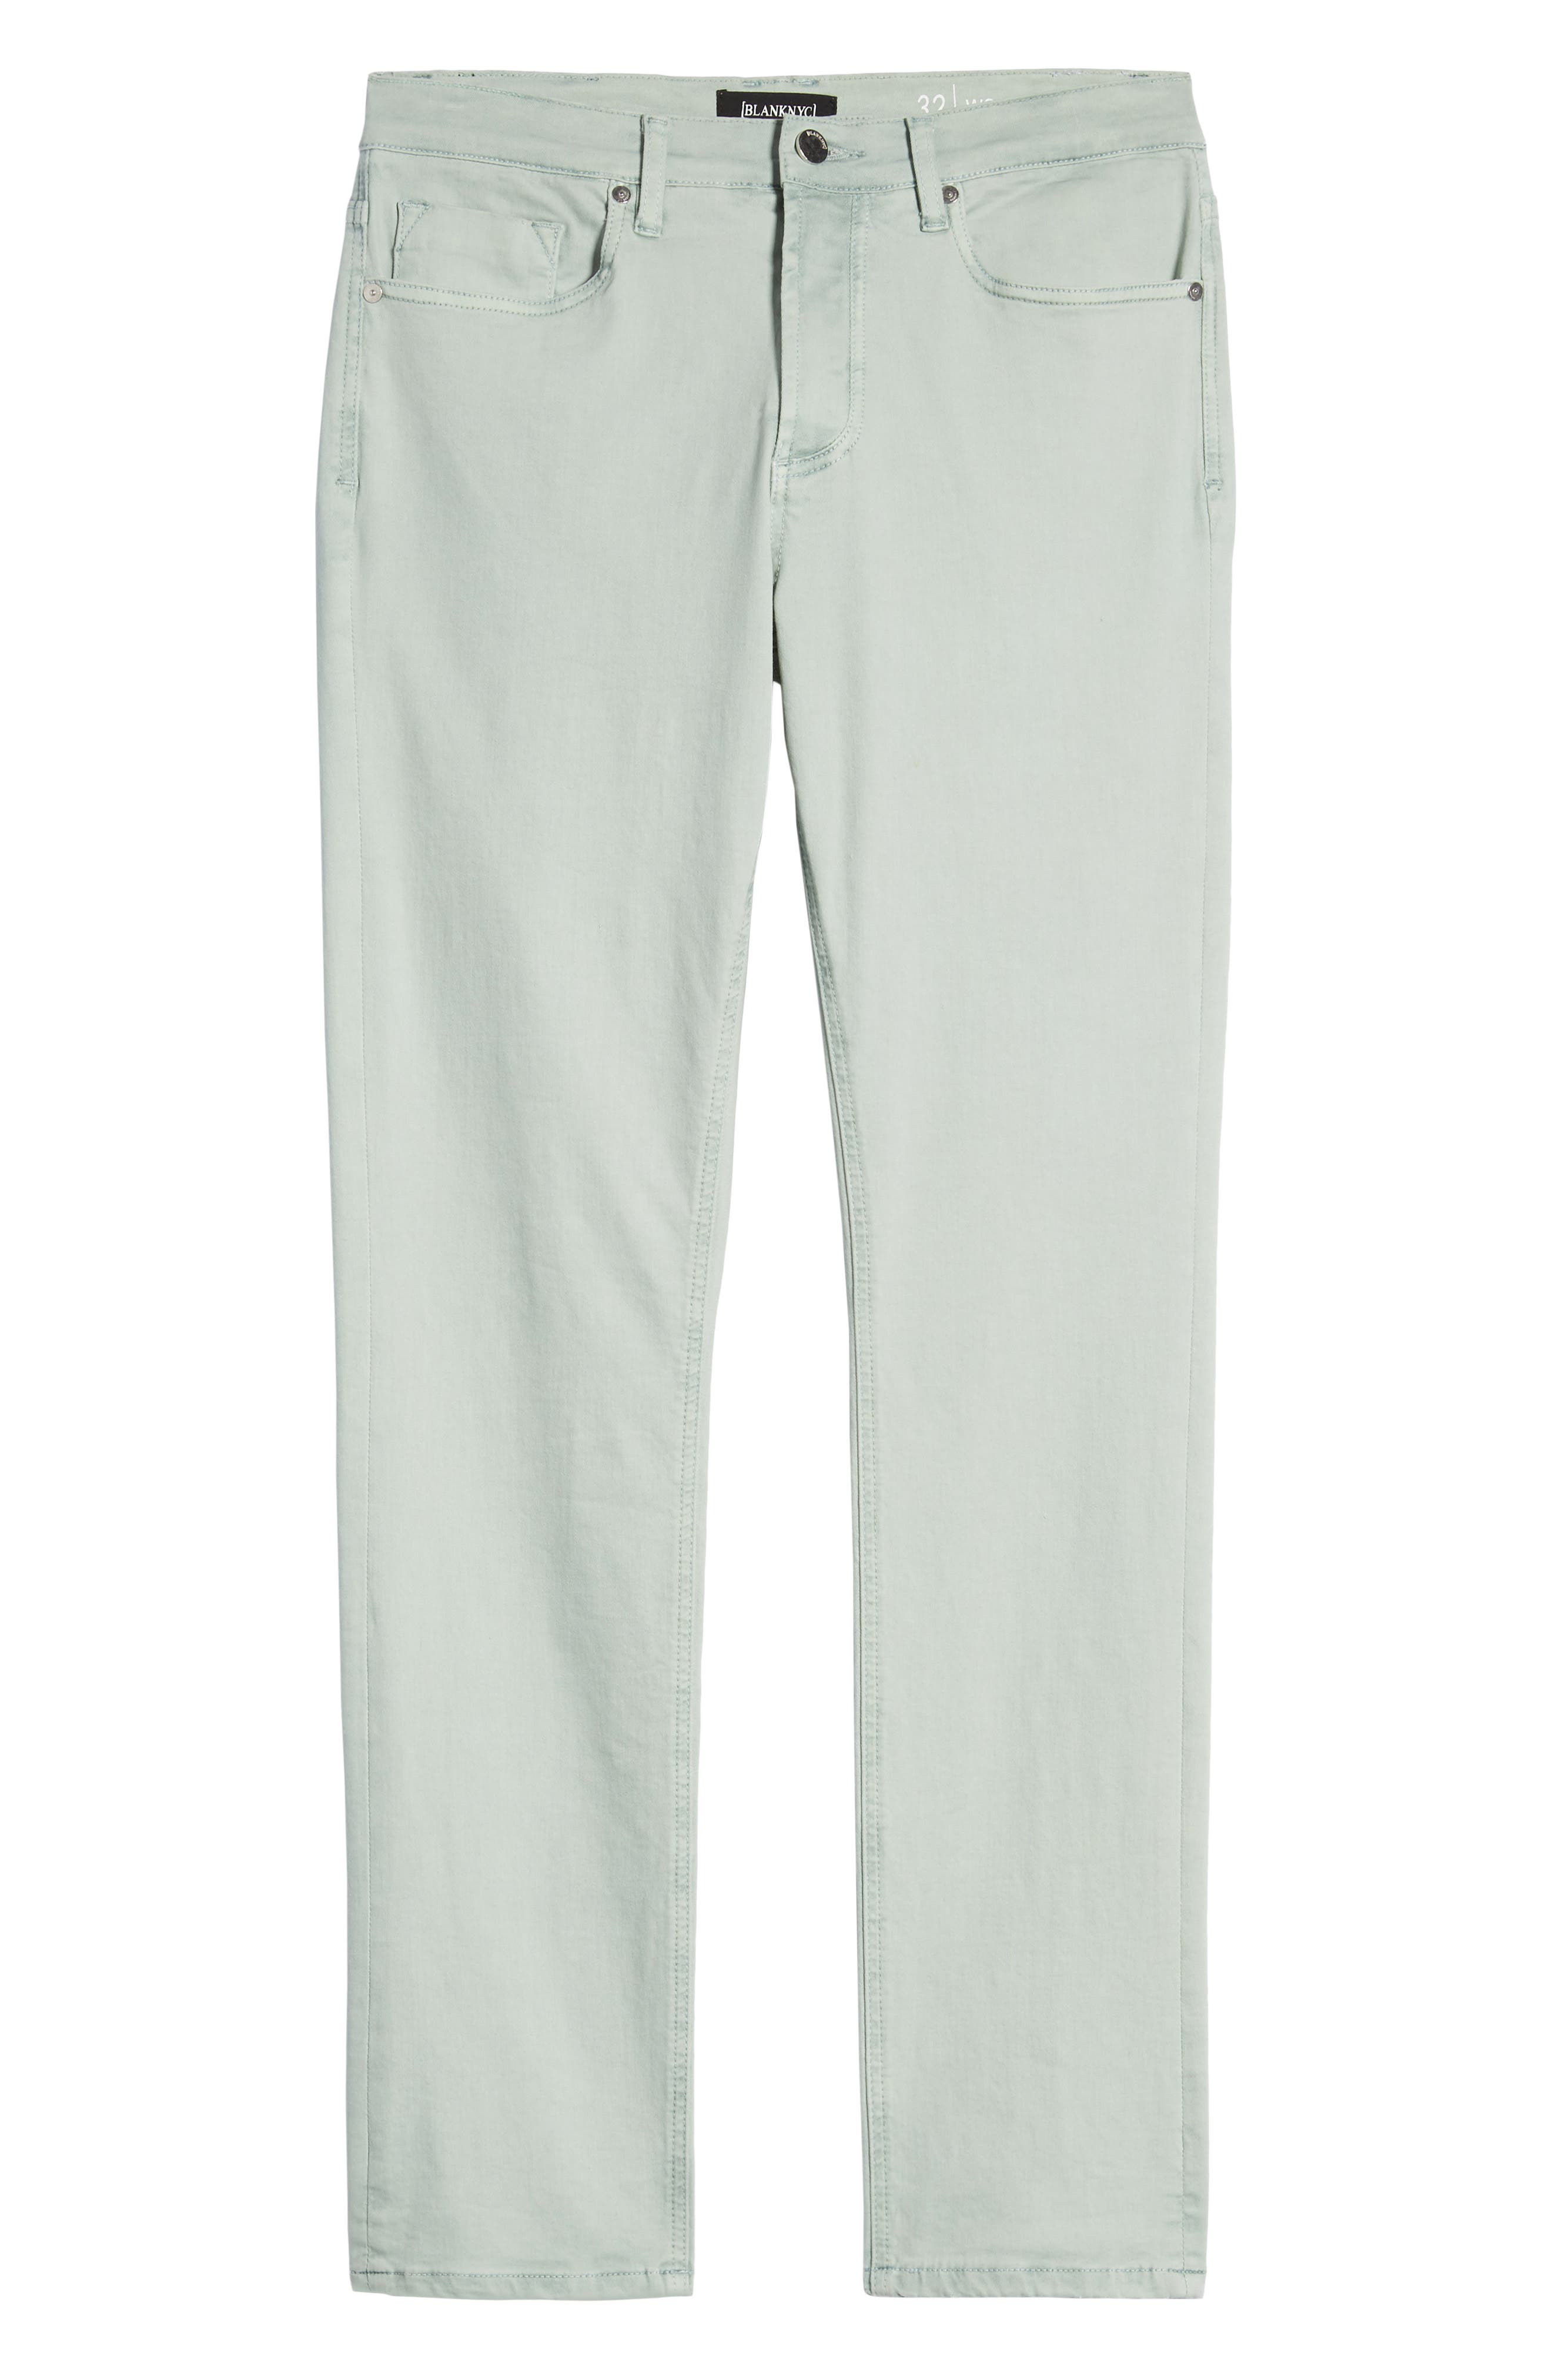 BLANKNYC, Wooster Slim Fit Jeans, Alternate thumbnail 7, color, PURE DEVOTION